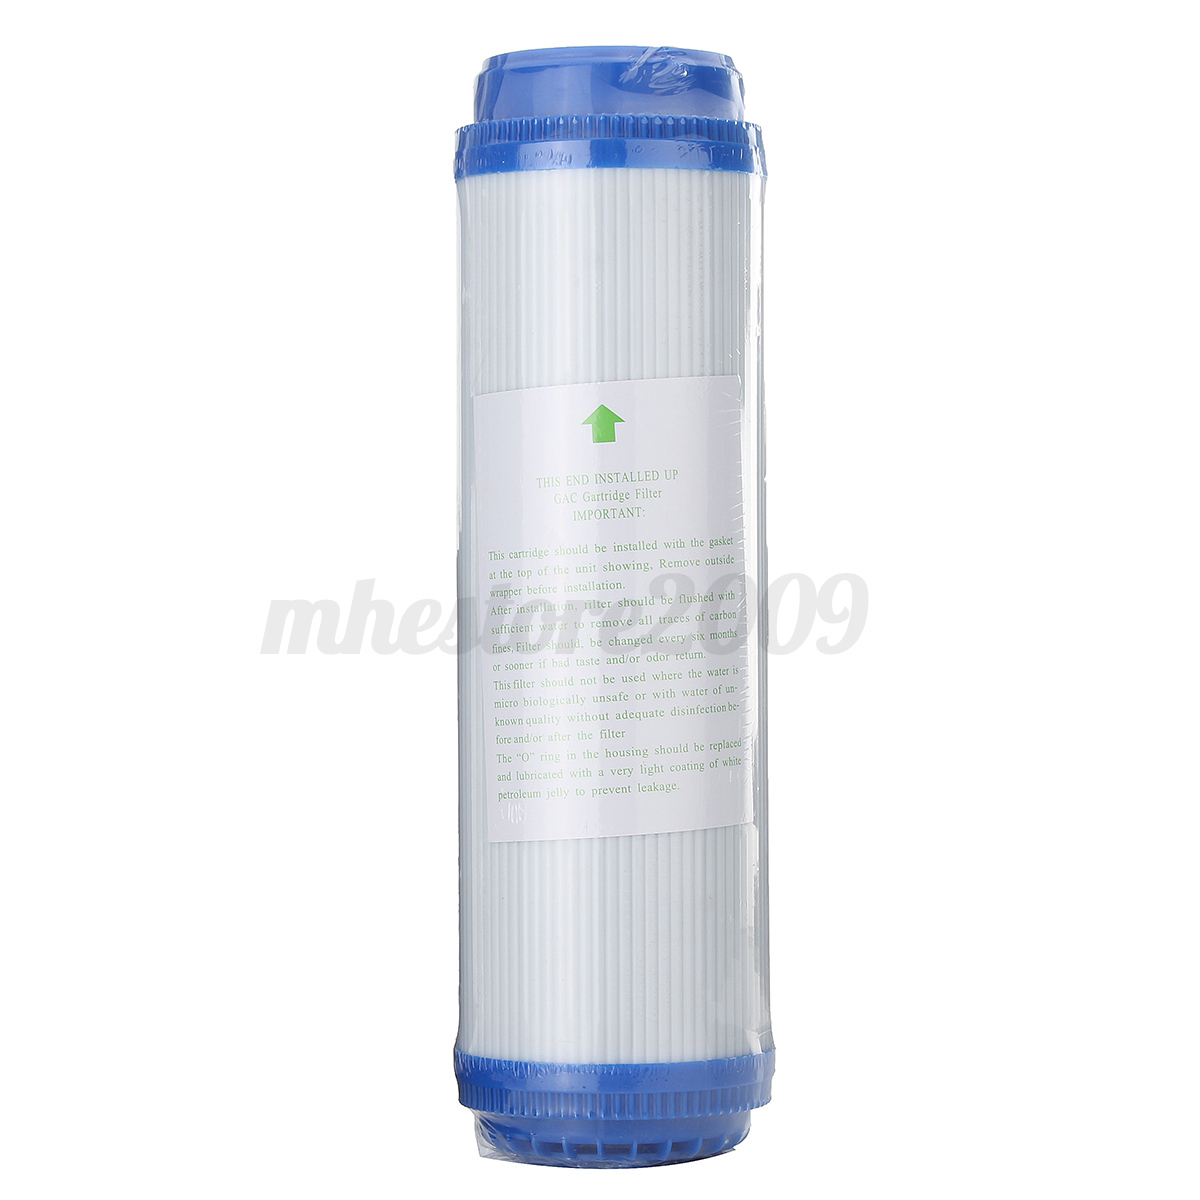 Dual whole house reverse osmosis water filter purifier for Garden water filter